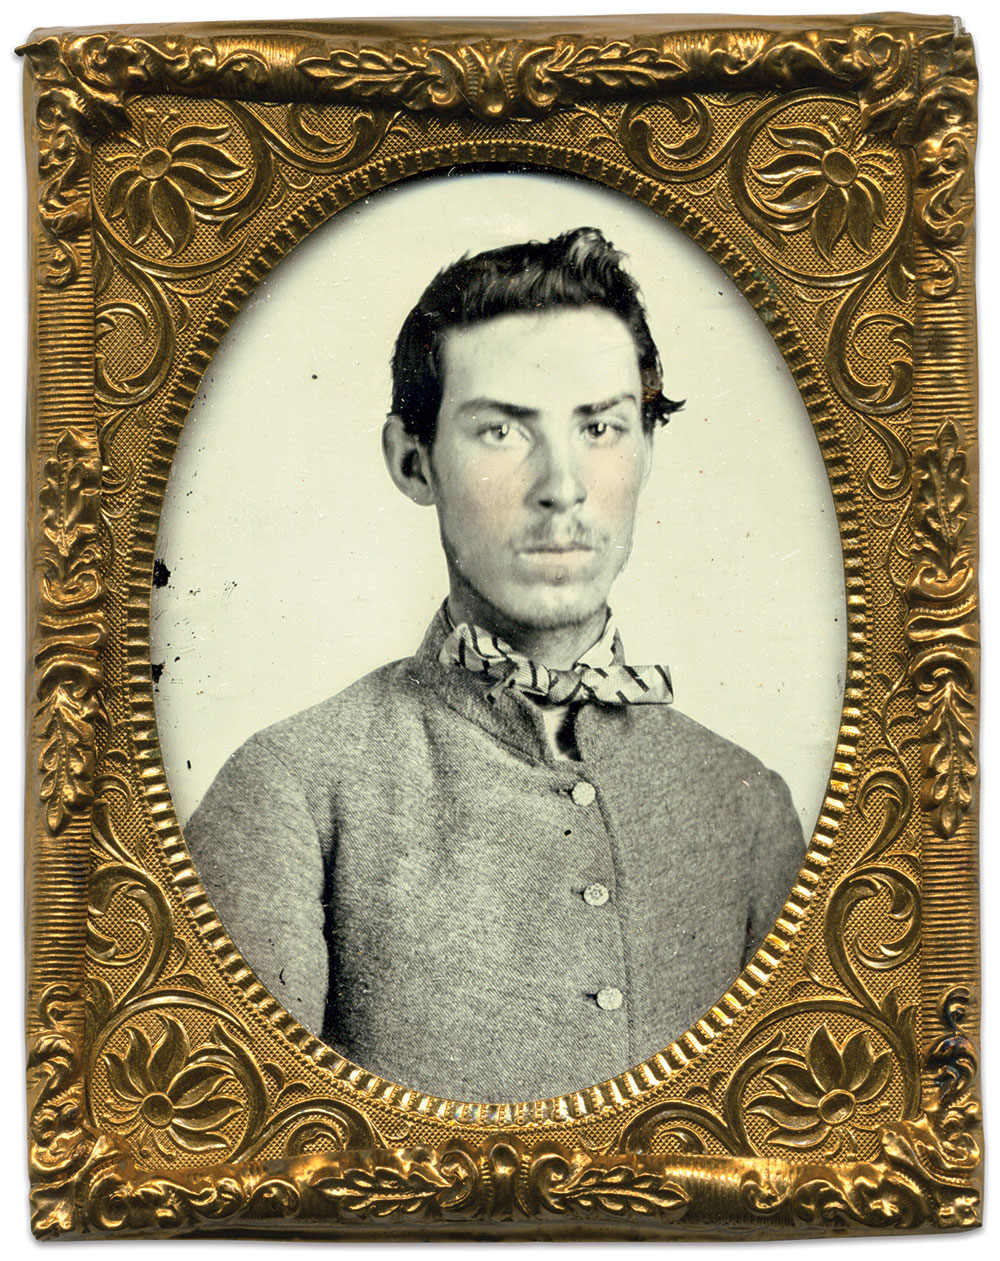 Ninth-plate ambrotype by an anonymous photographer. Rick Brown Collection.